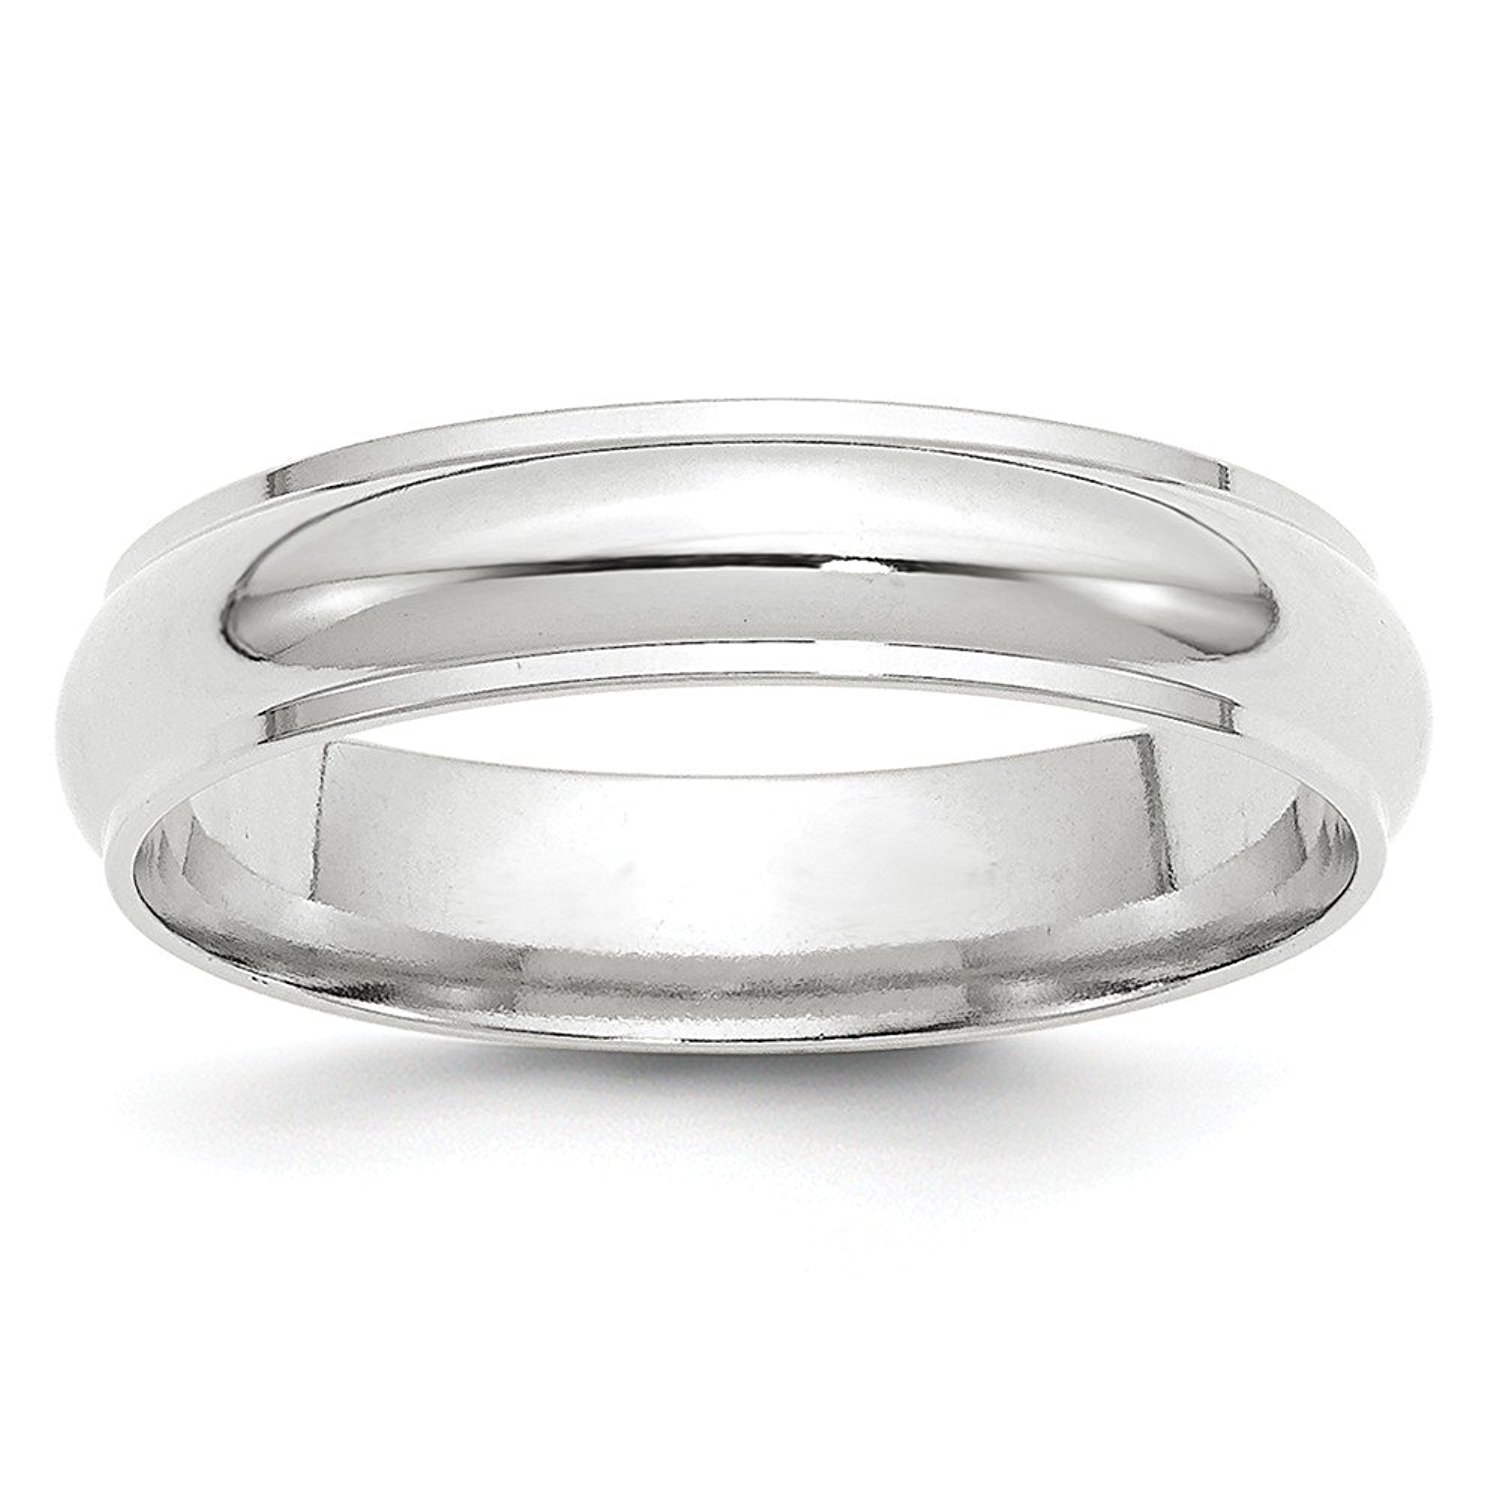 Perfect Jewelry Gift 10KW 5mm Standard Flat Comfort Fit Band Size 14